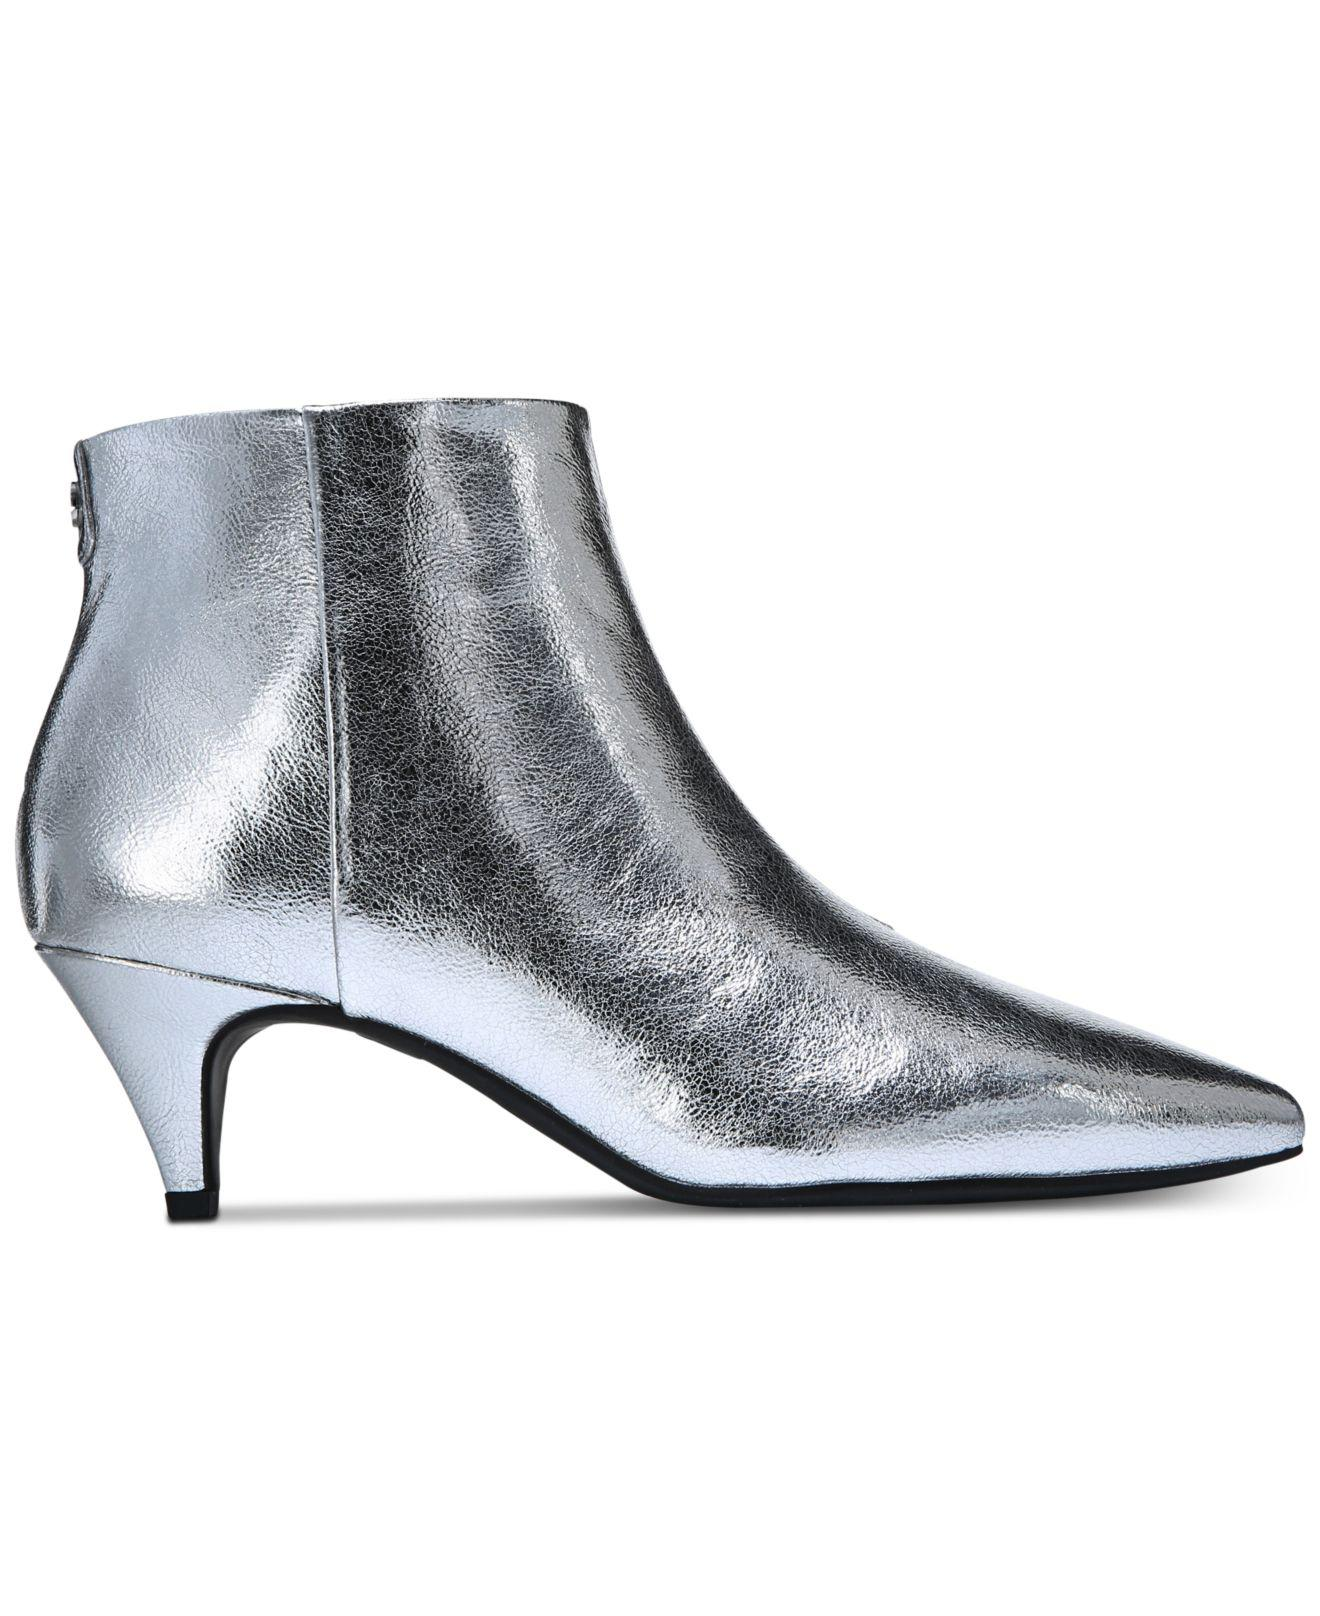 7e4b2c5a78 Circus by Sam Edelman Kirby Booties, Created For Macy's in Metallic ...